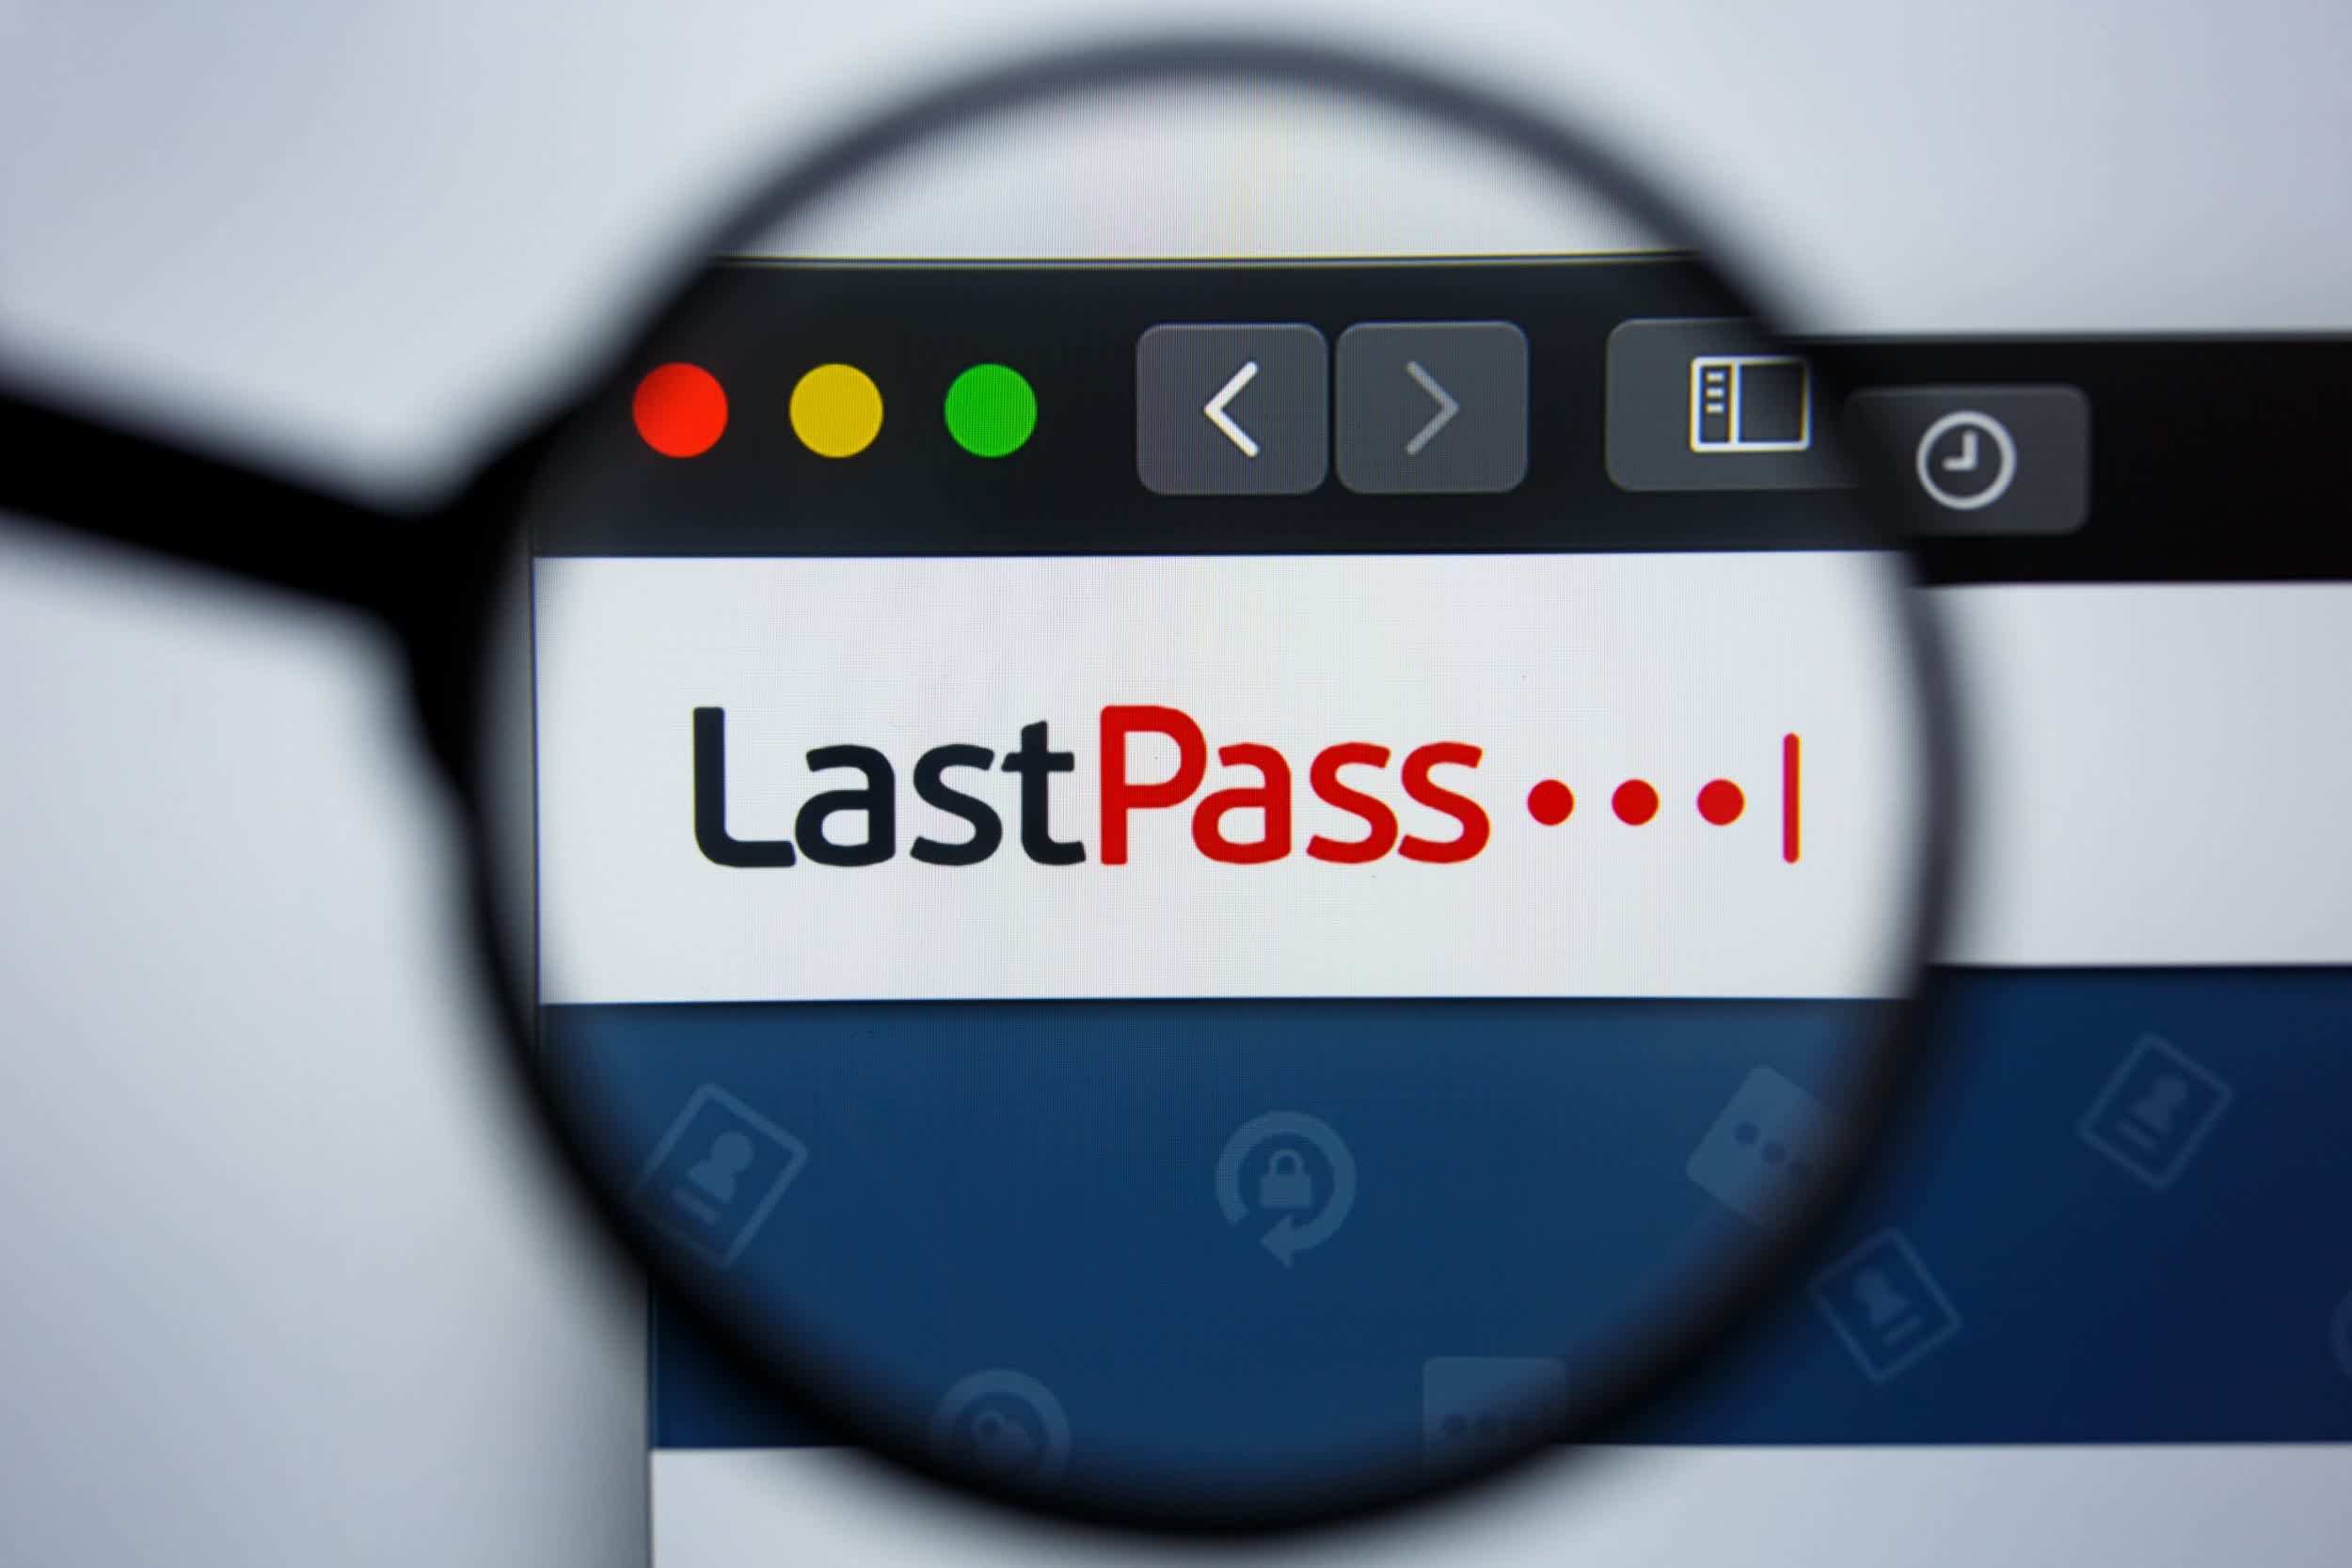 LastPass free tier users will have to pick a device type starting in March